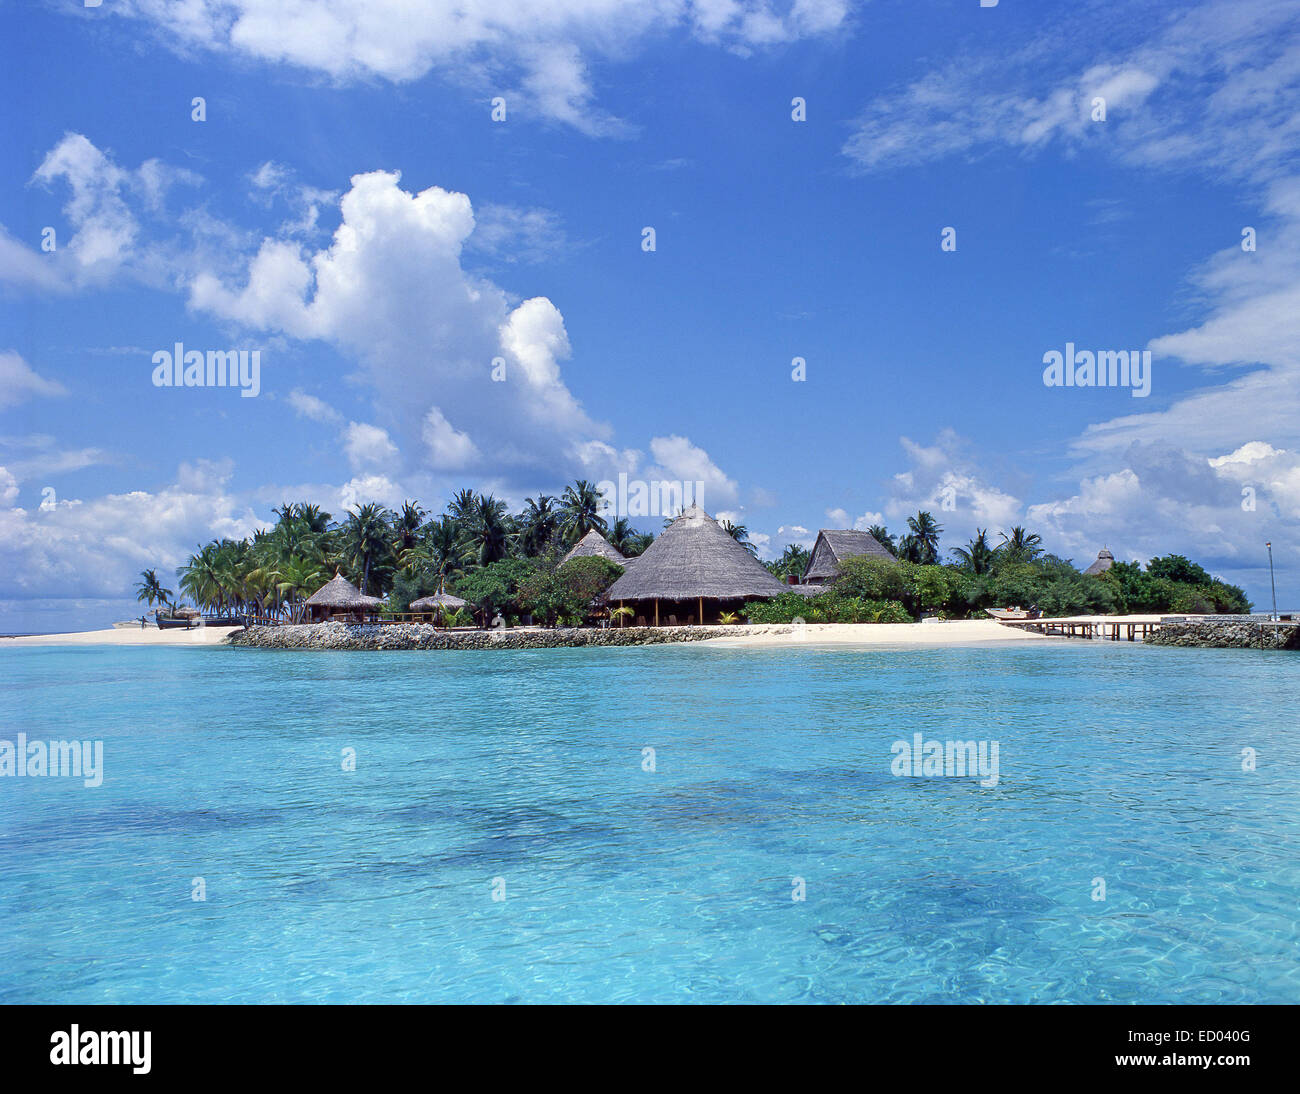 Angsana Ihuru Resort, Angsana Ihuru, Kaafu Atoll, Republic of Maldives - Stock Image